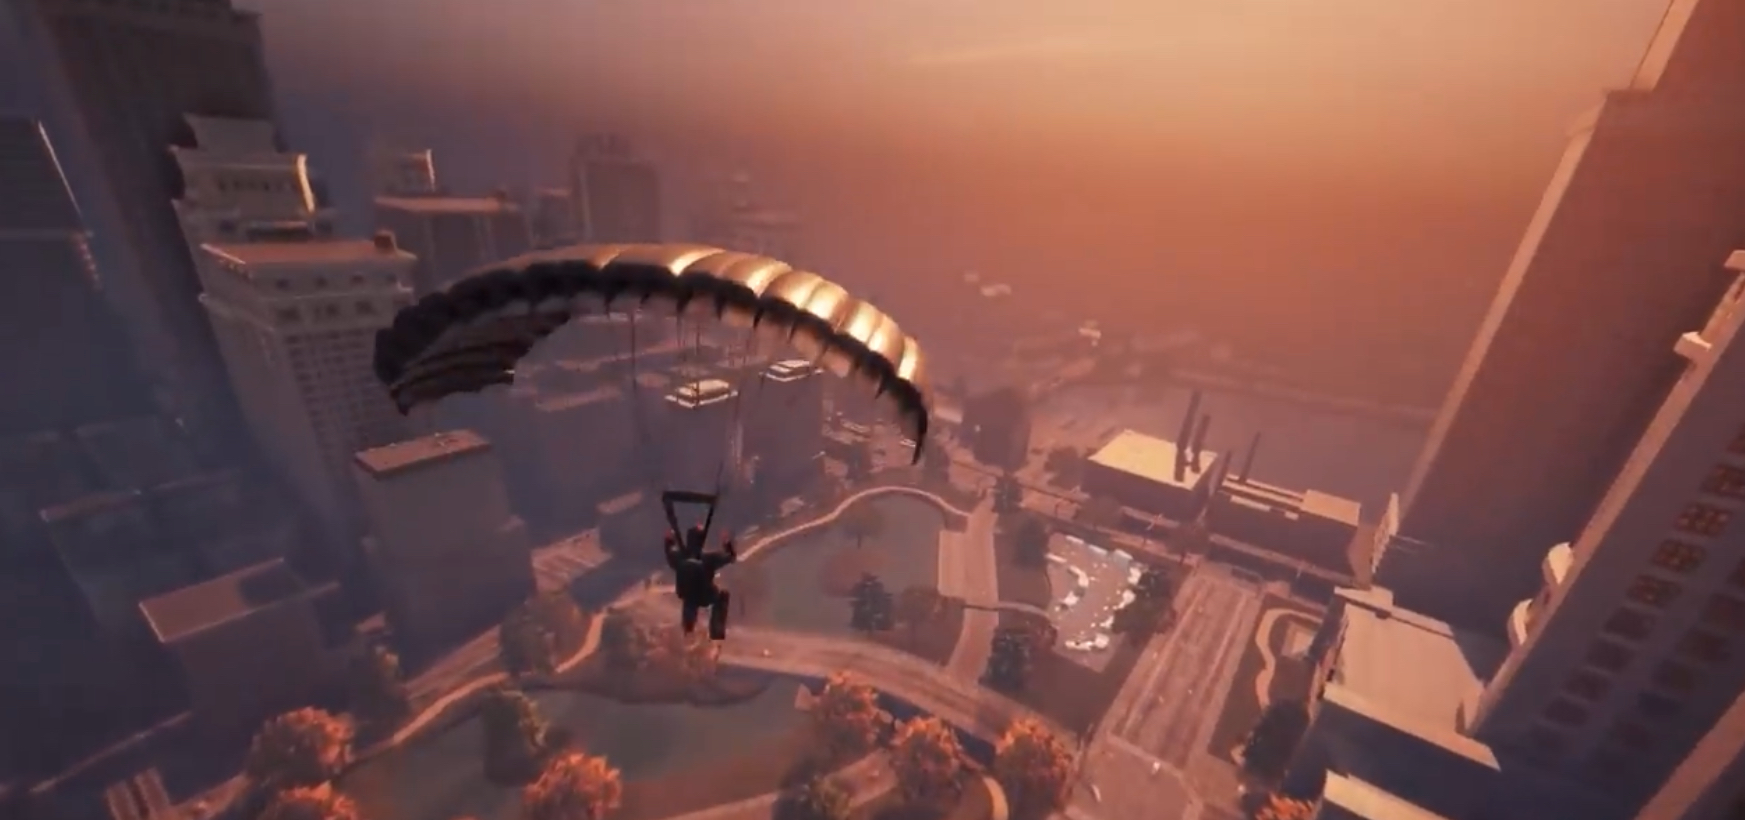 Saints Row: The Third Remastered Received An Official Trailer Announcement And It Looks Awesome